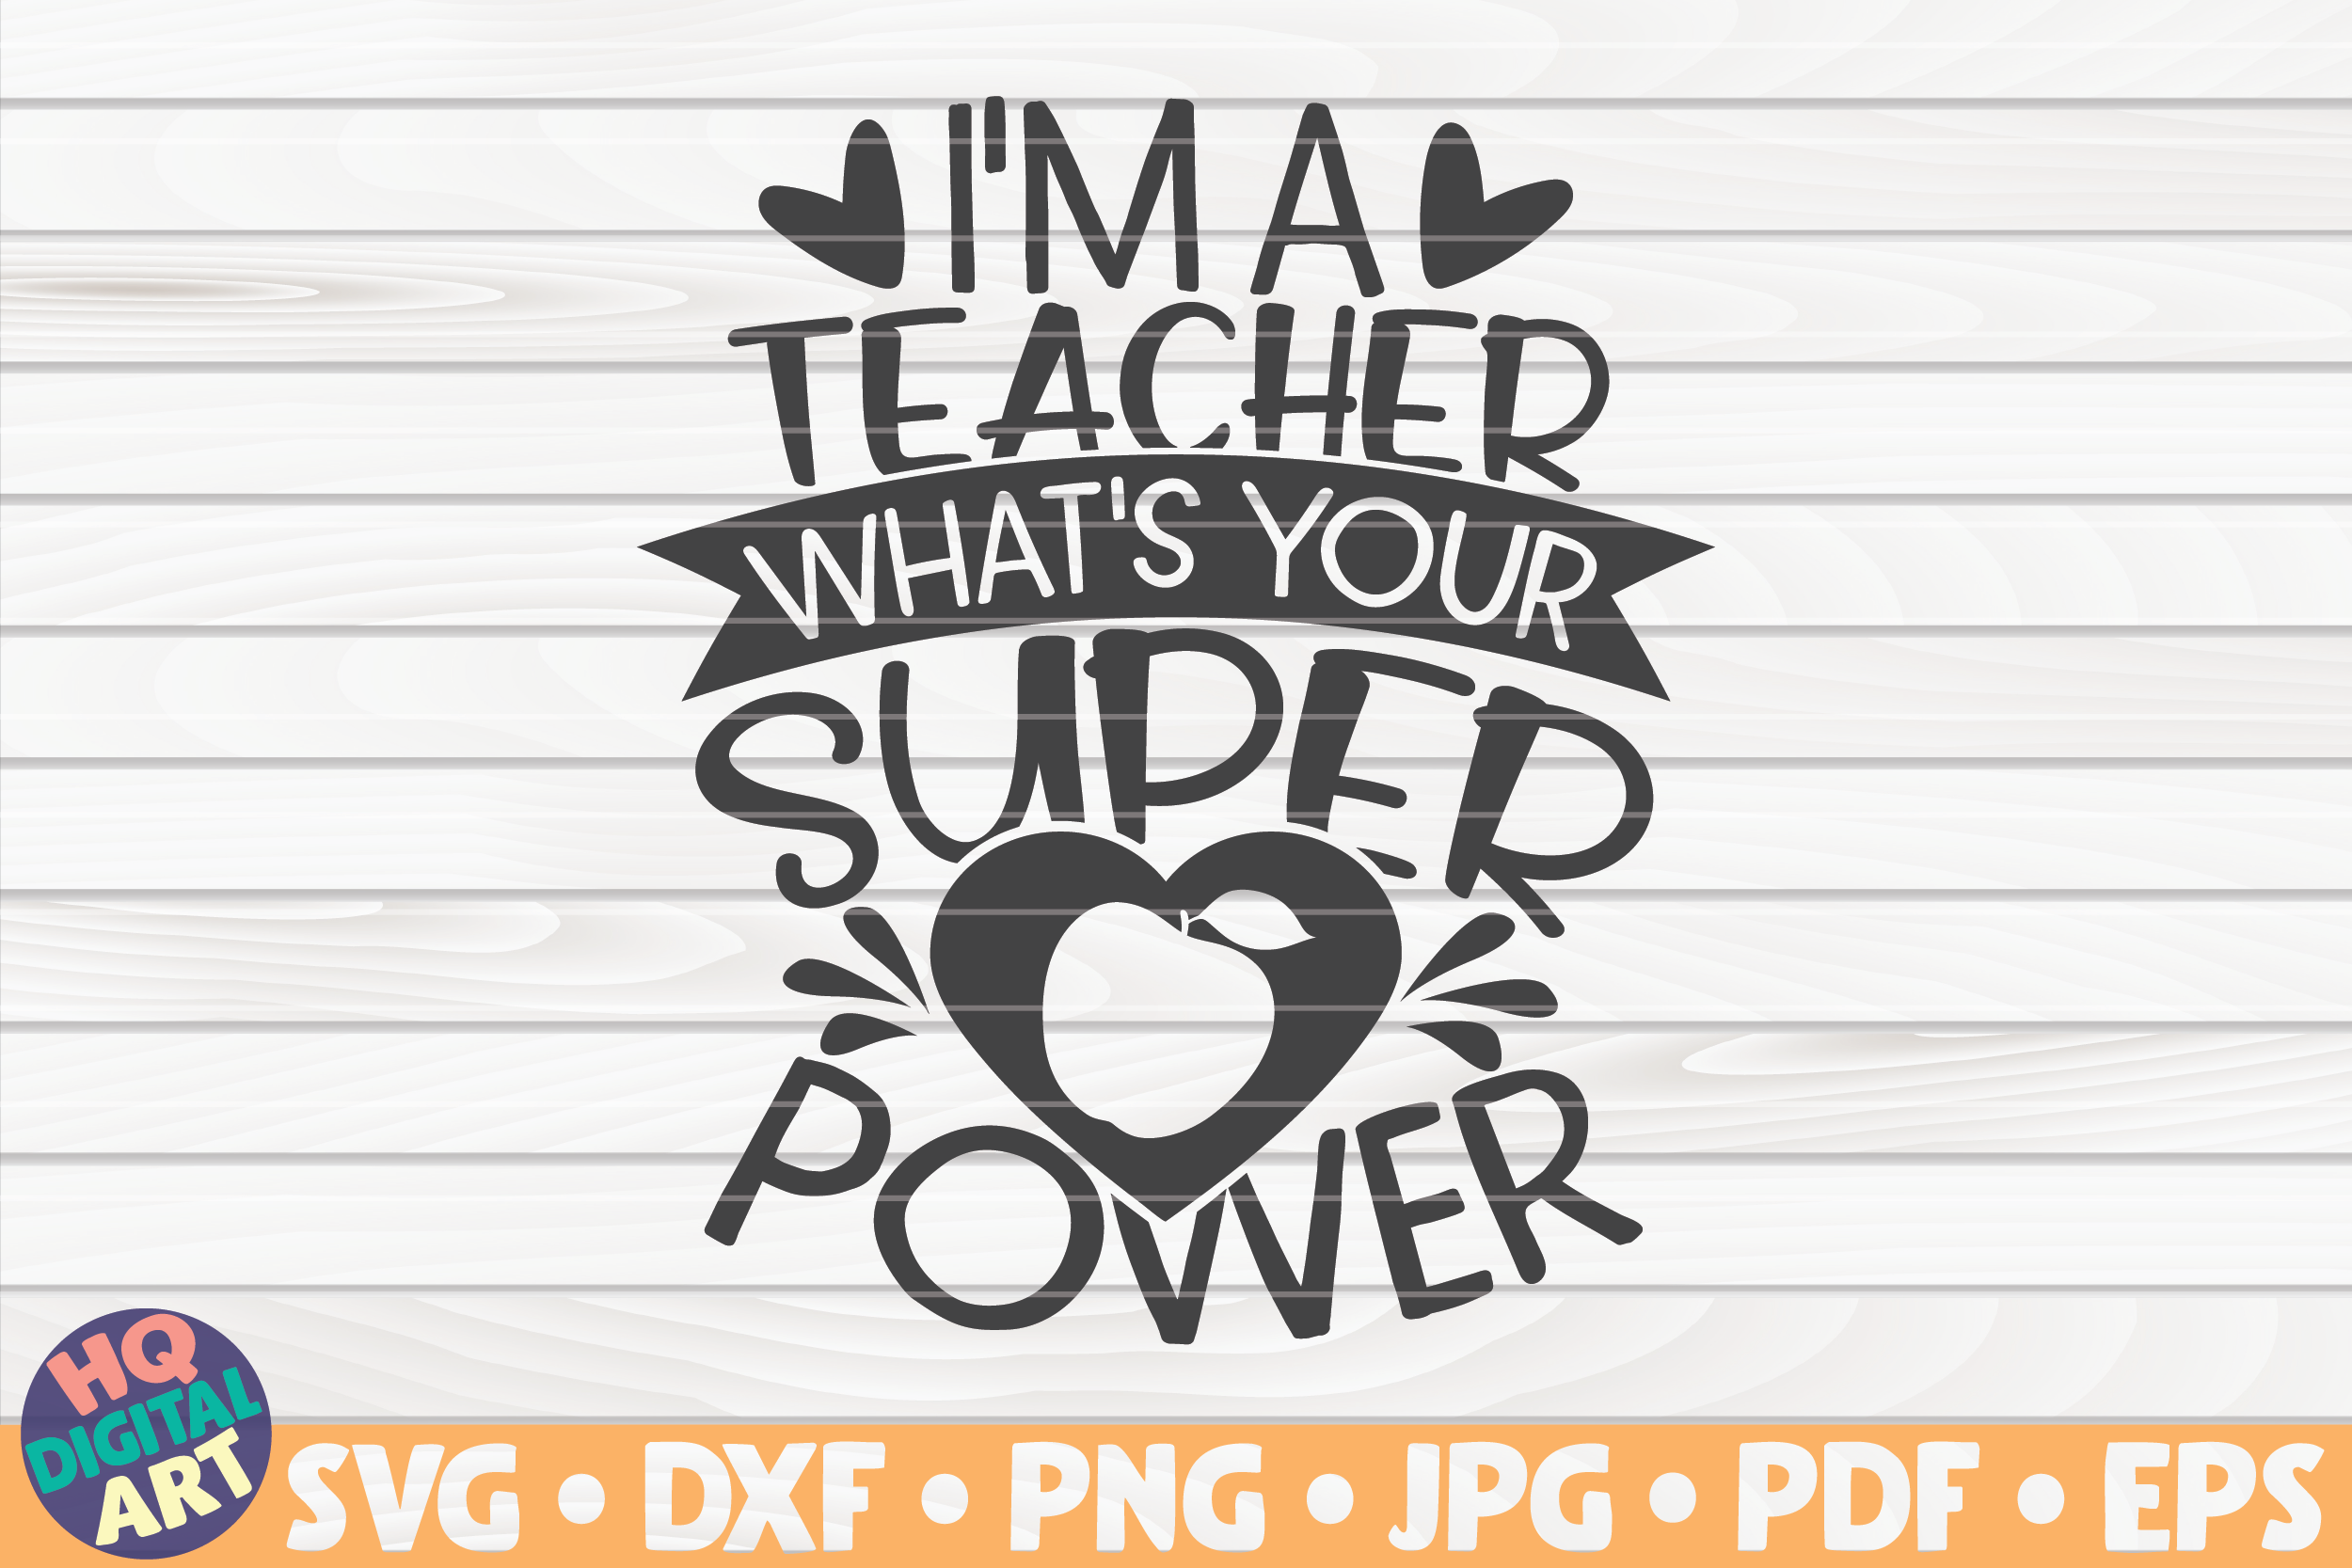 Download Free I M A Teacher What S Your Superpower Graphic By Mihaibadea95 for Cricut Explore, Silhouette and other cutting machines.